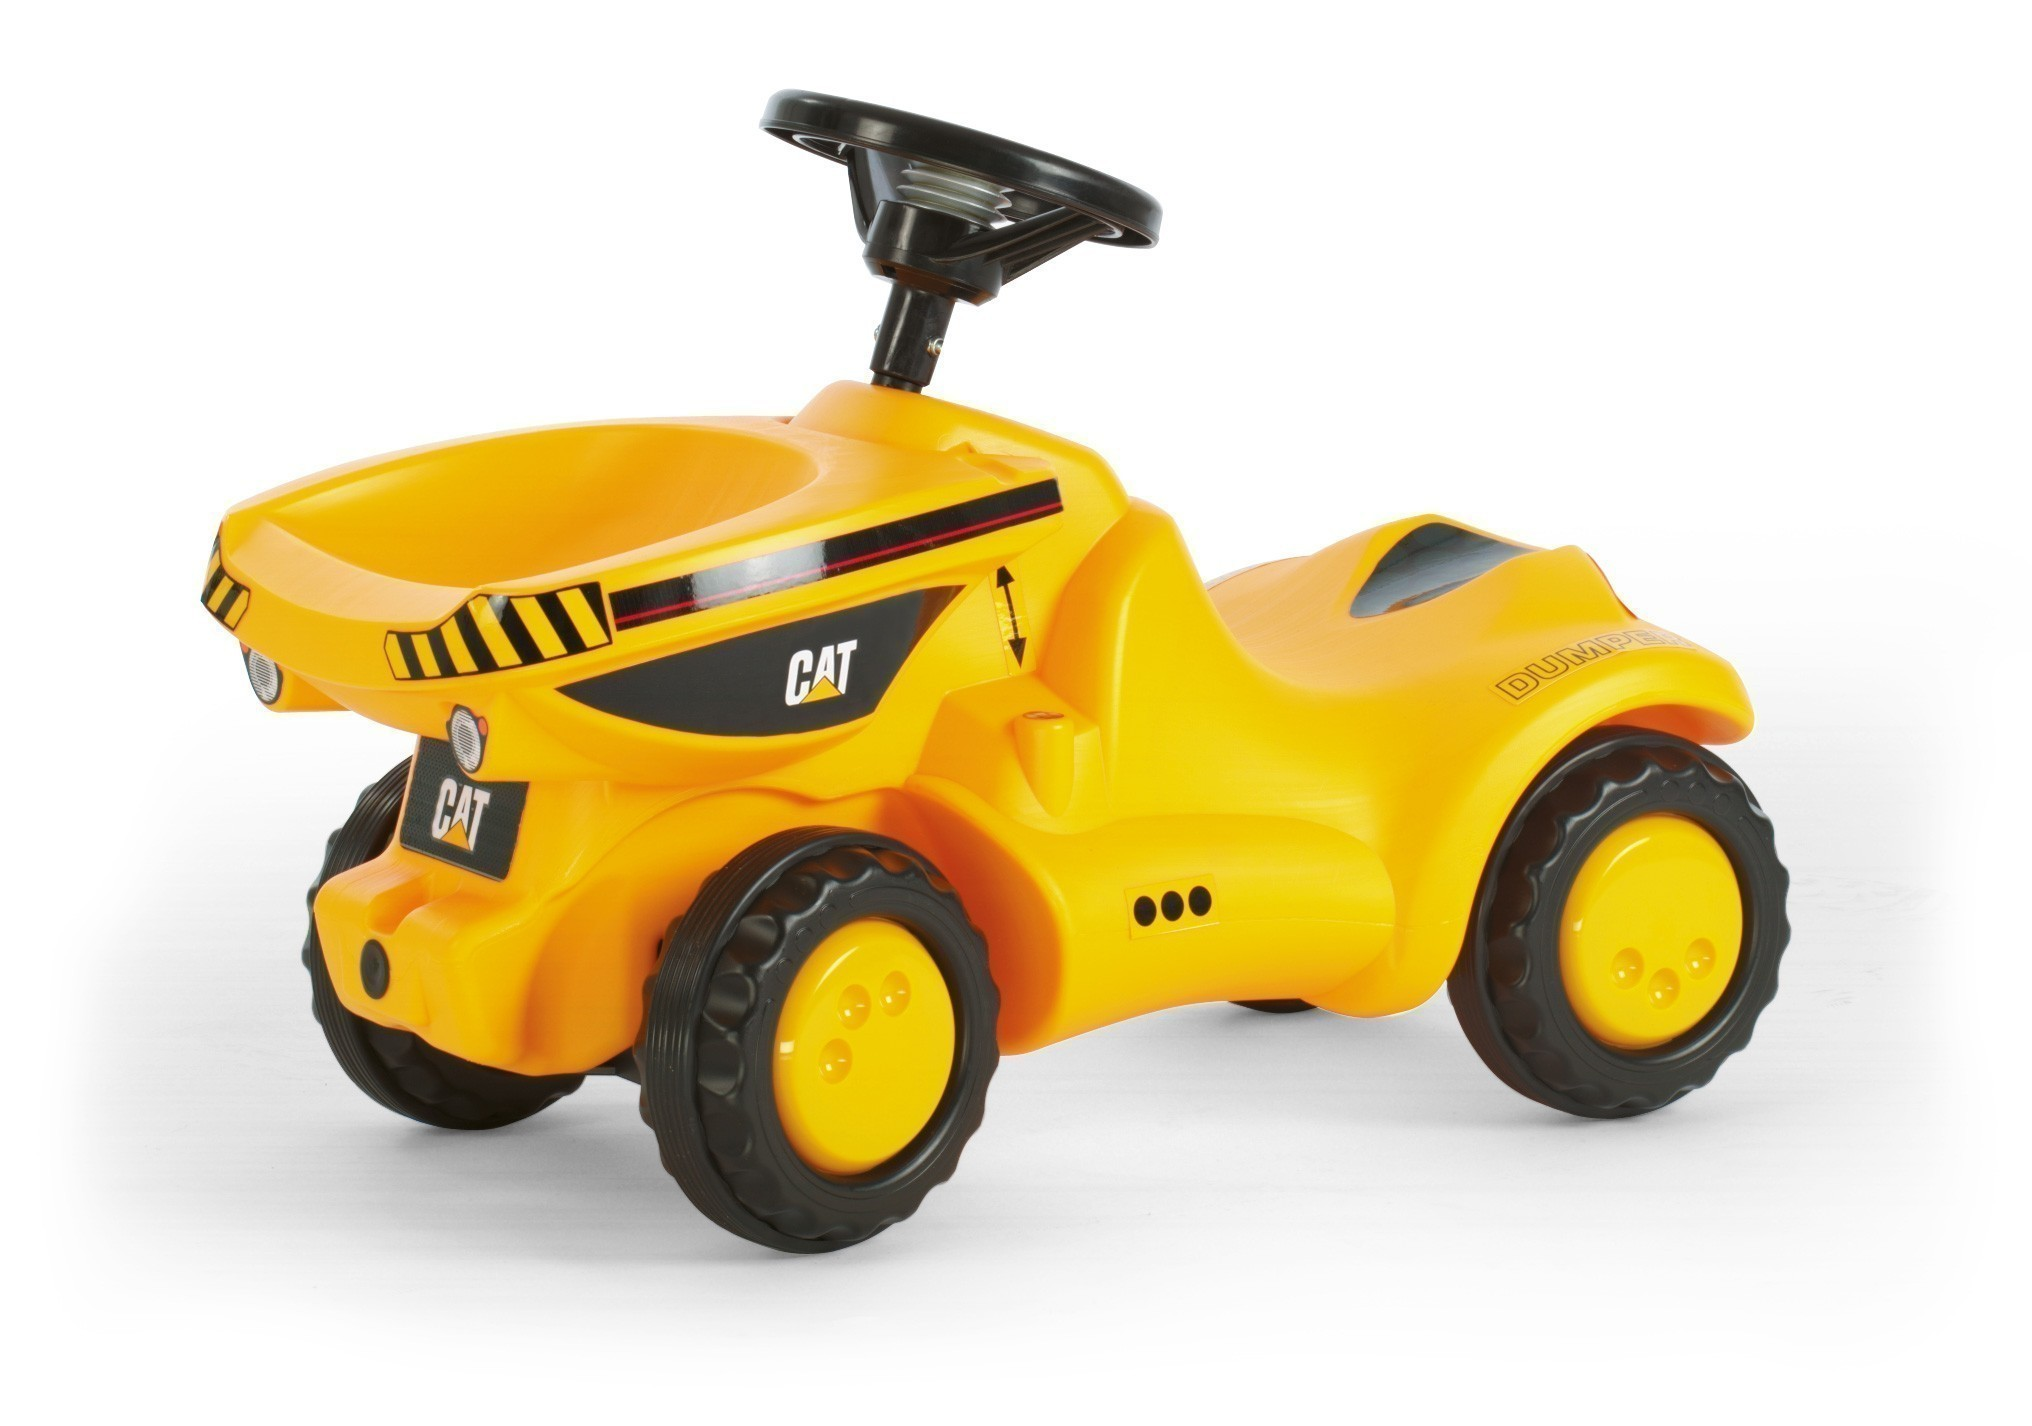 Rutscher rolly Minitrac CAT Dumper - Rolly Toys Bild 1